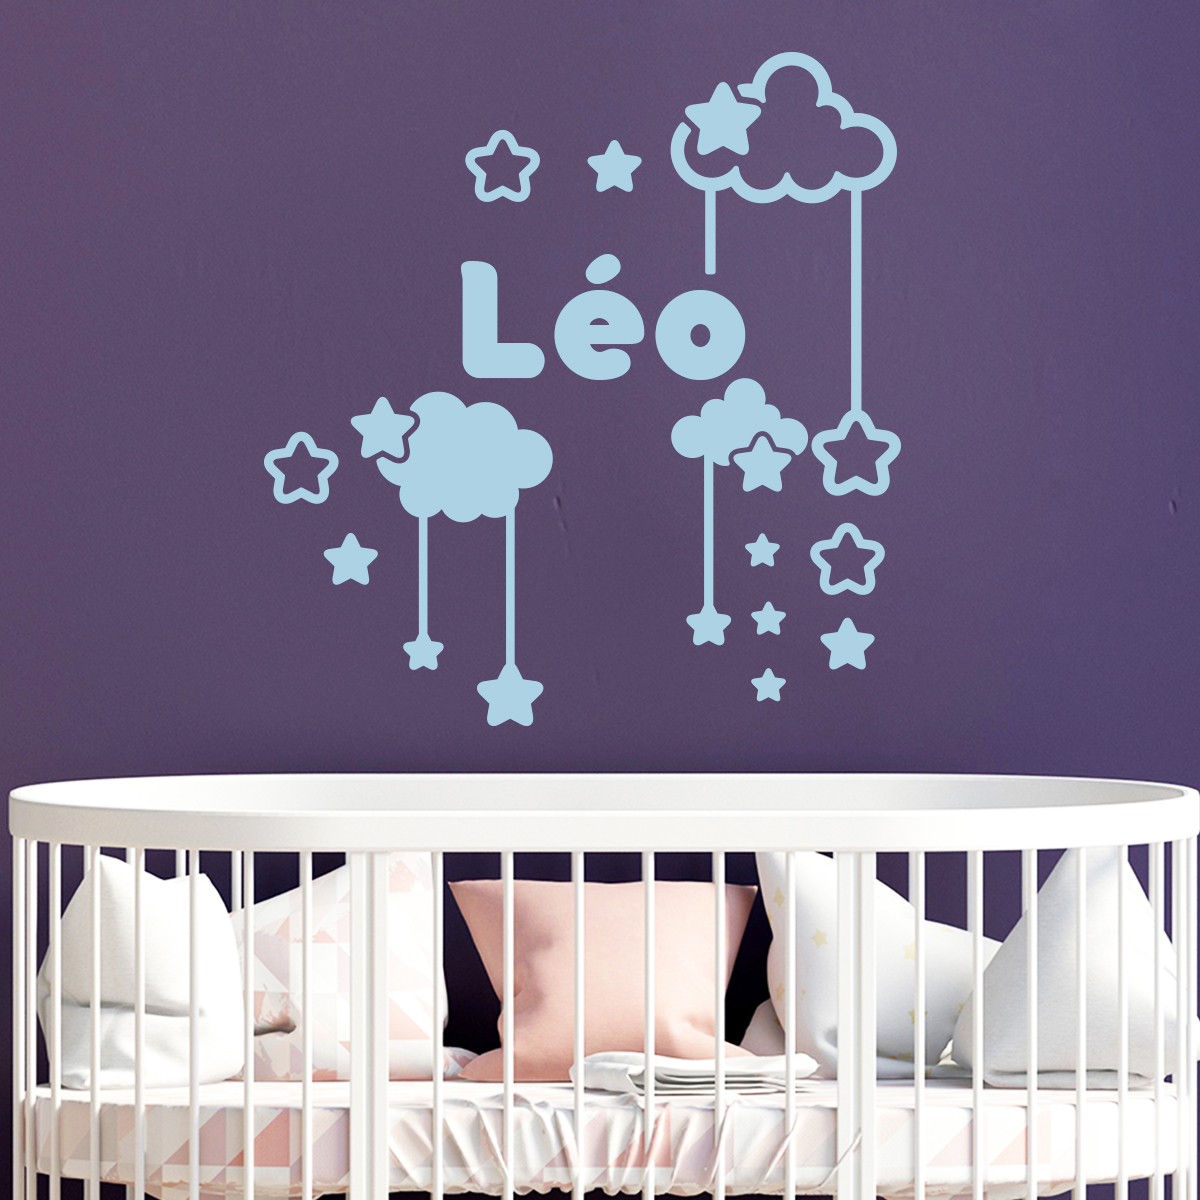 sticker pr nom personnalis ciel toil entre les nuages mini stickers pr nom perso ambiance. Black Bedroom Furniture Sets. Home Design Ideas